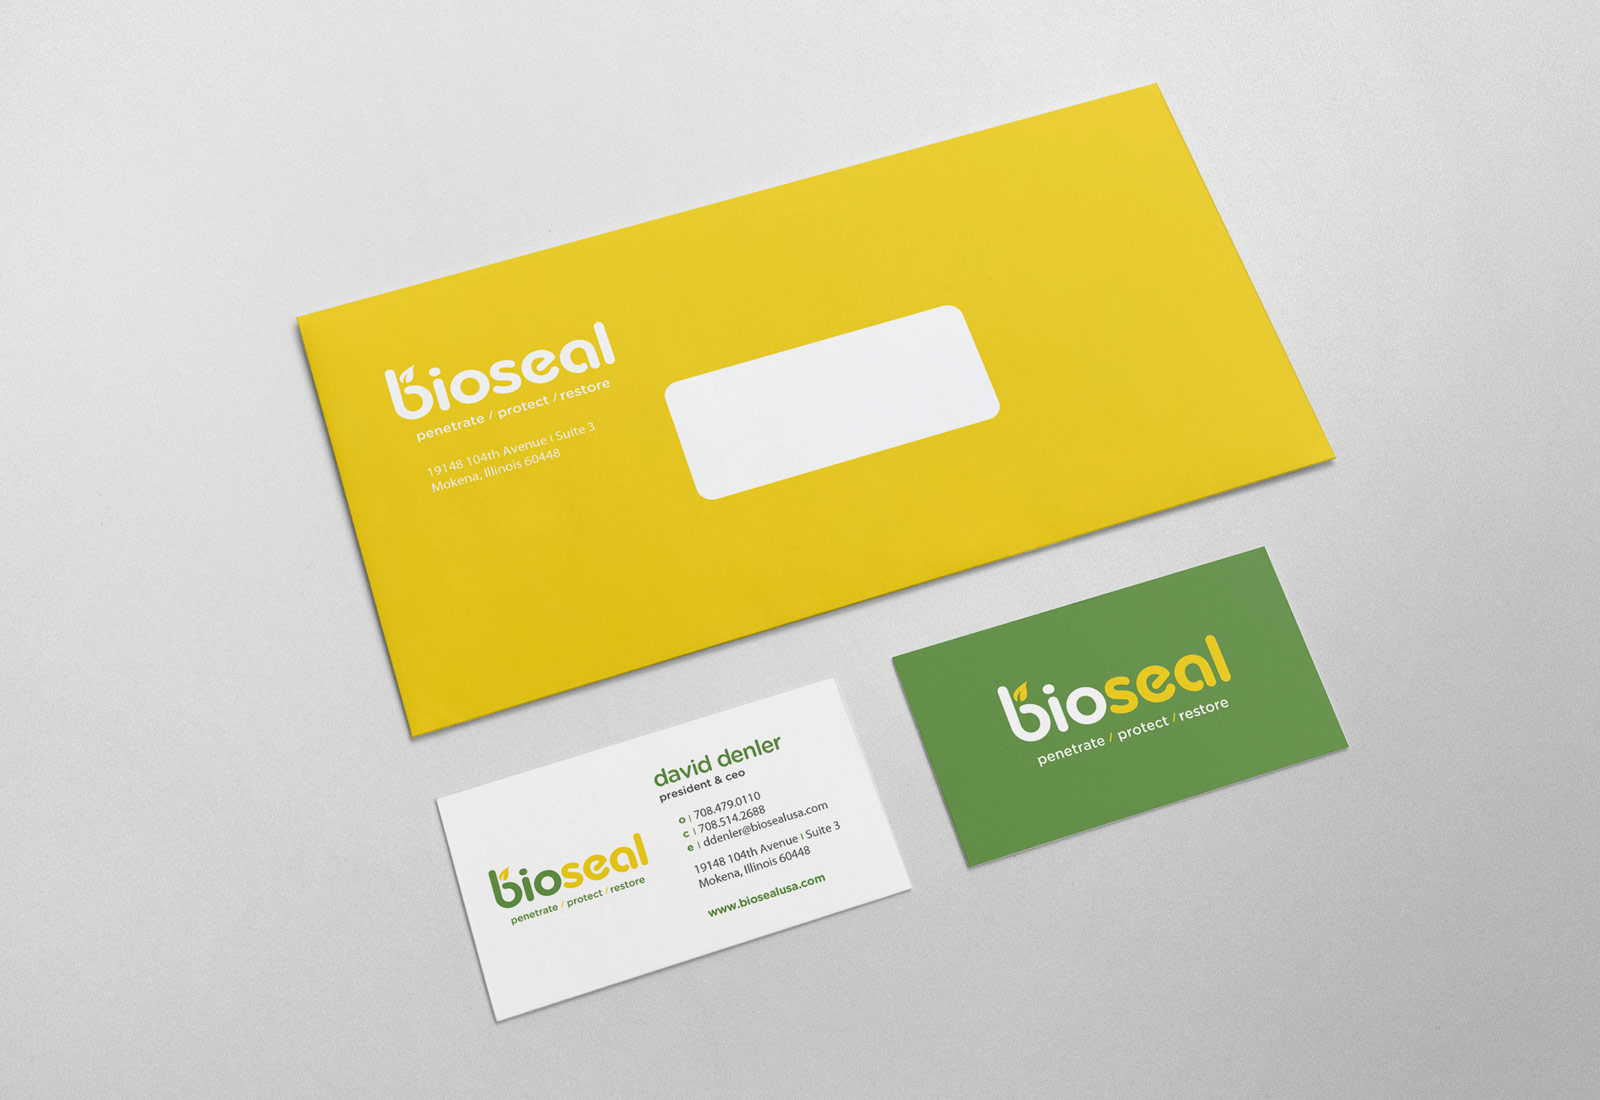 BioSeal USA Stationary View 2